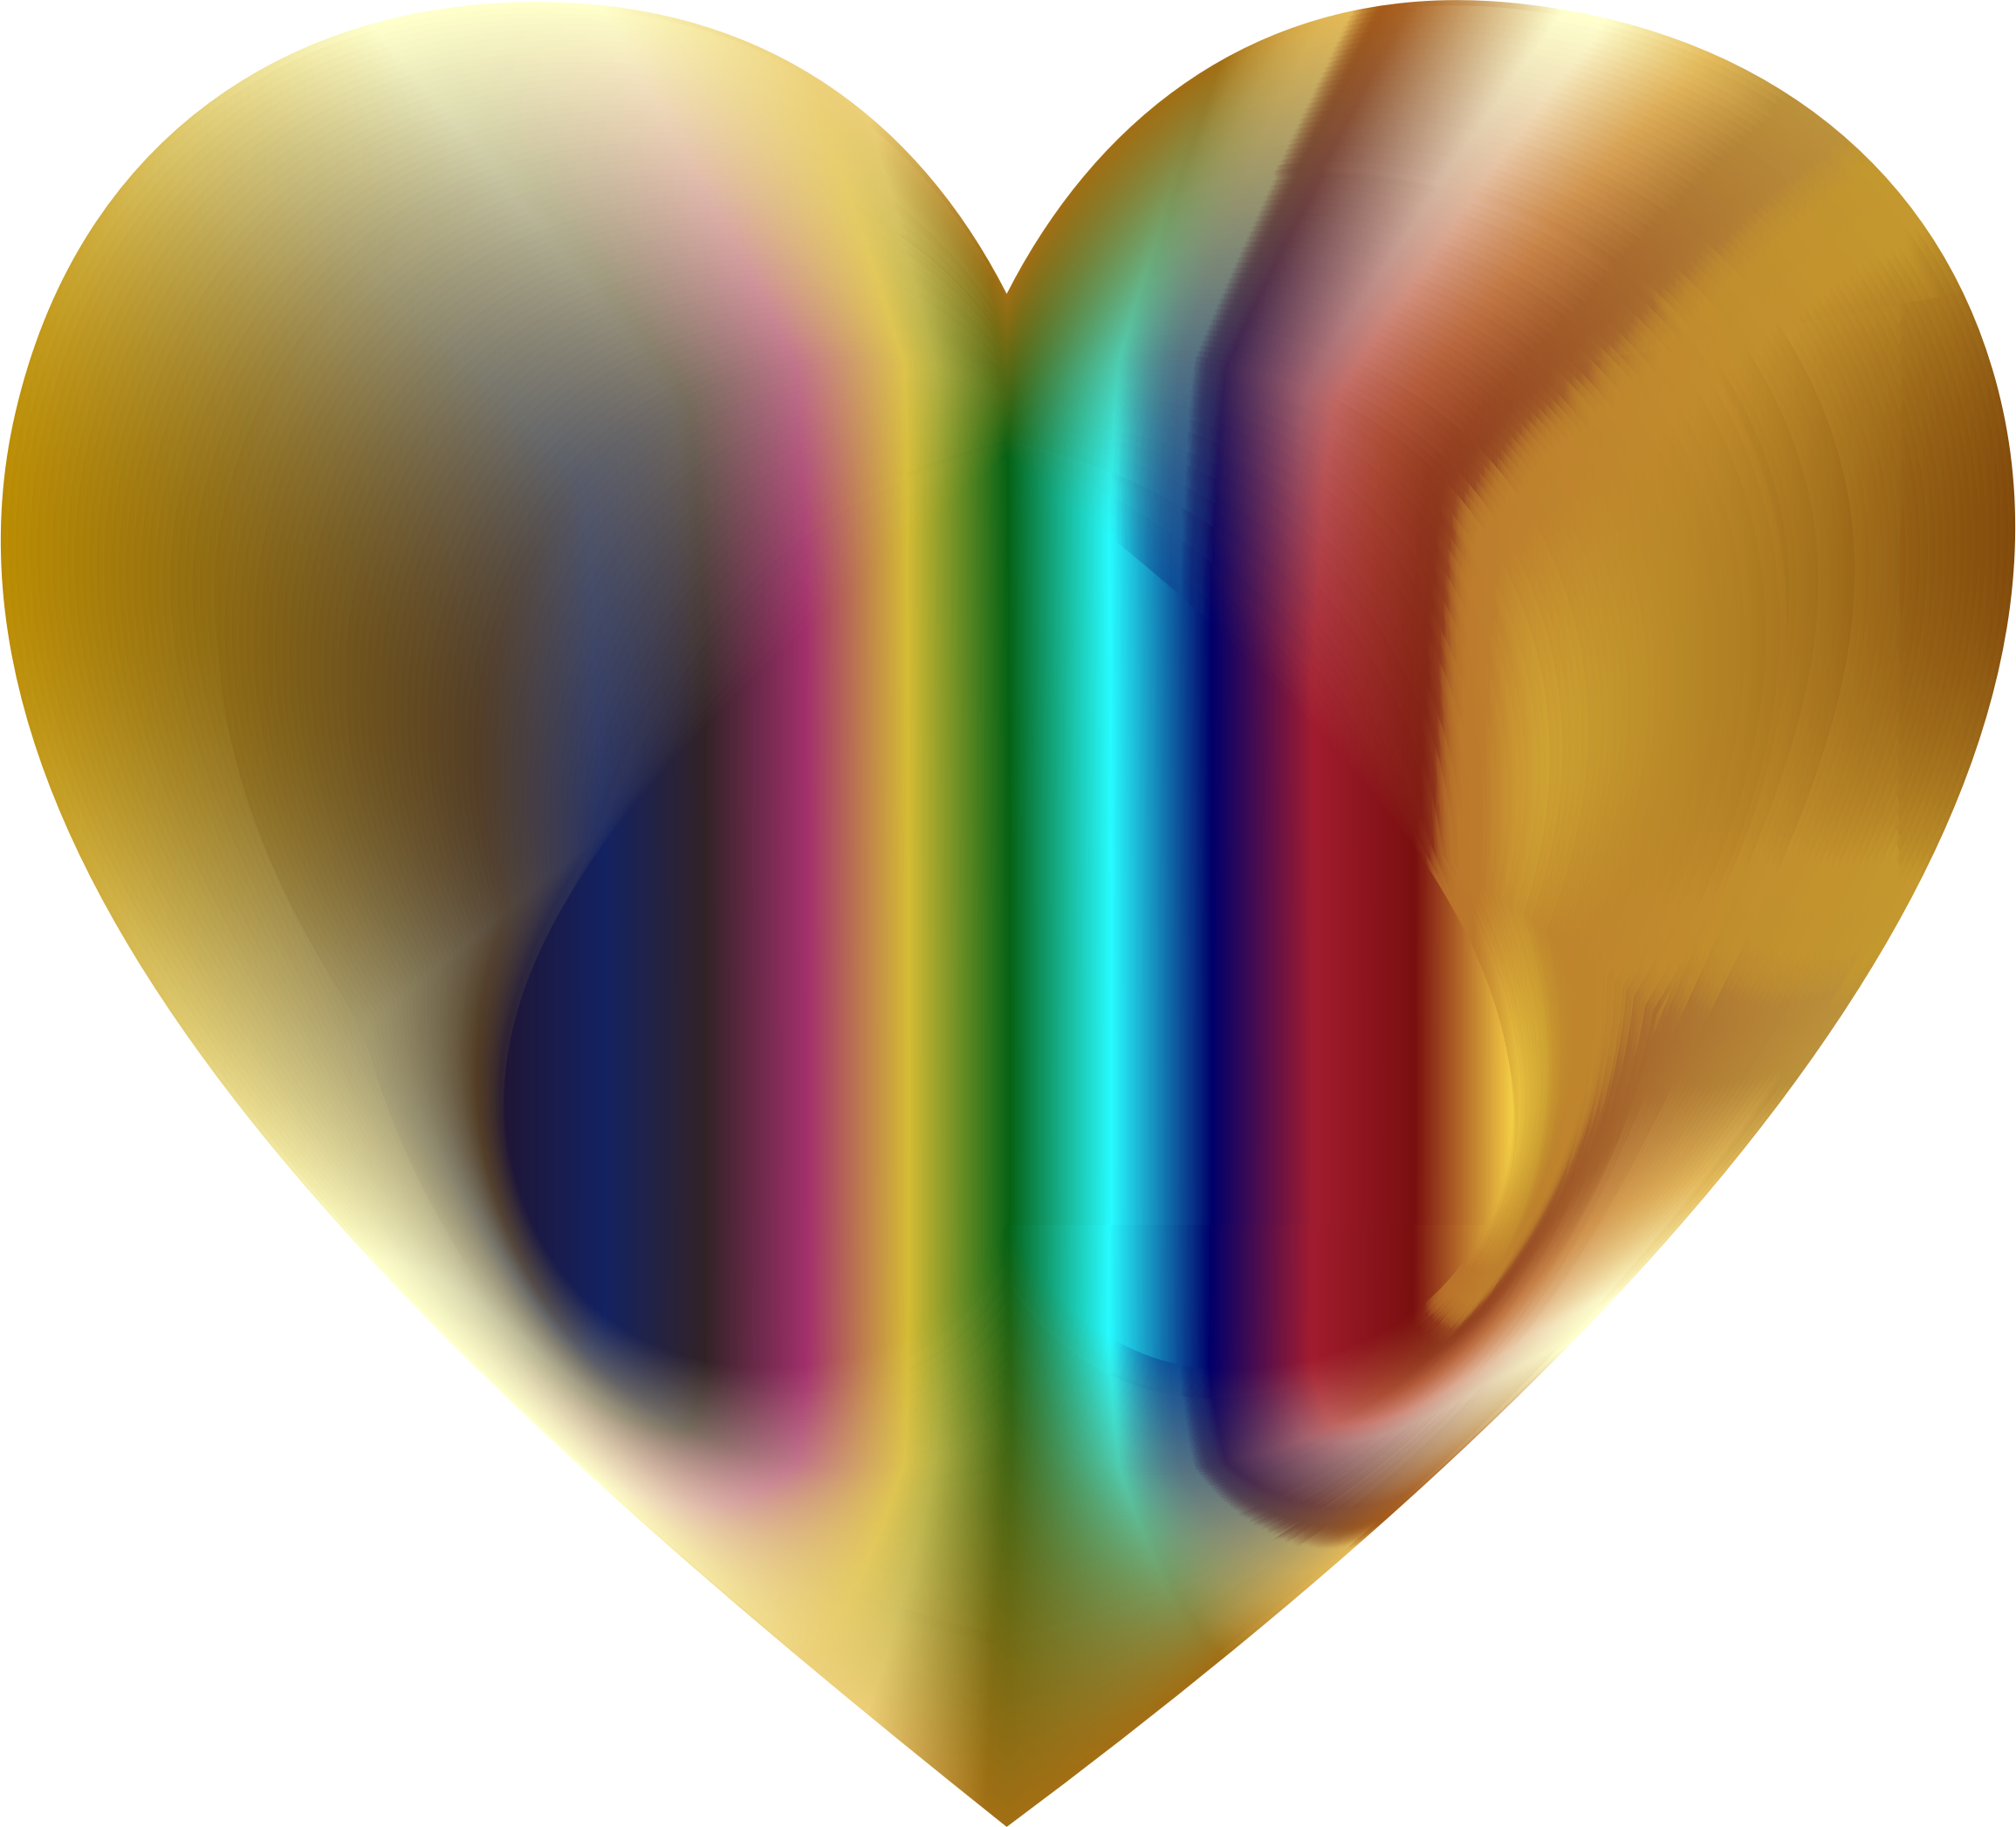 Colorful Refraction Heart 3 by GDJ